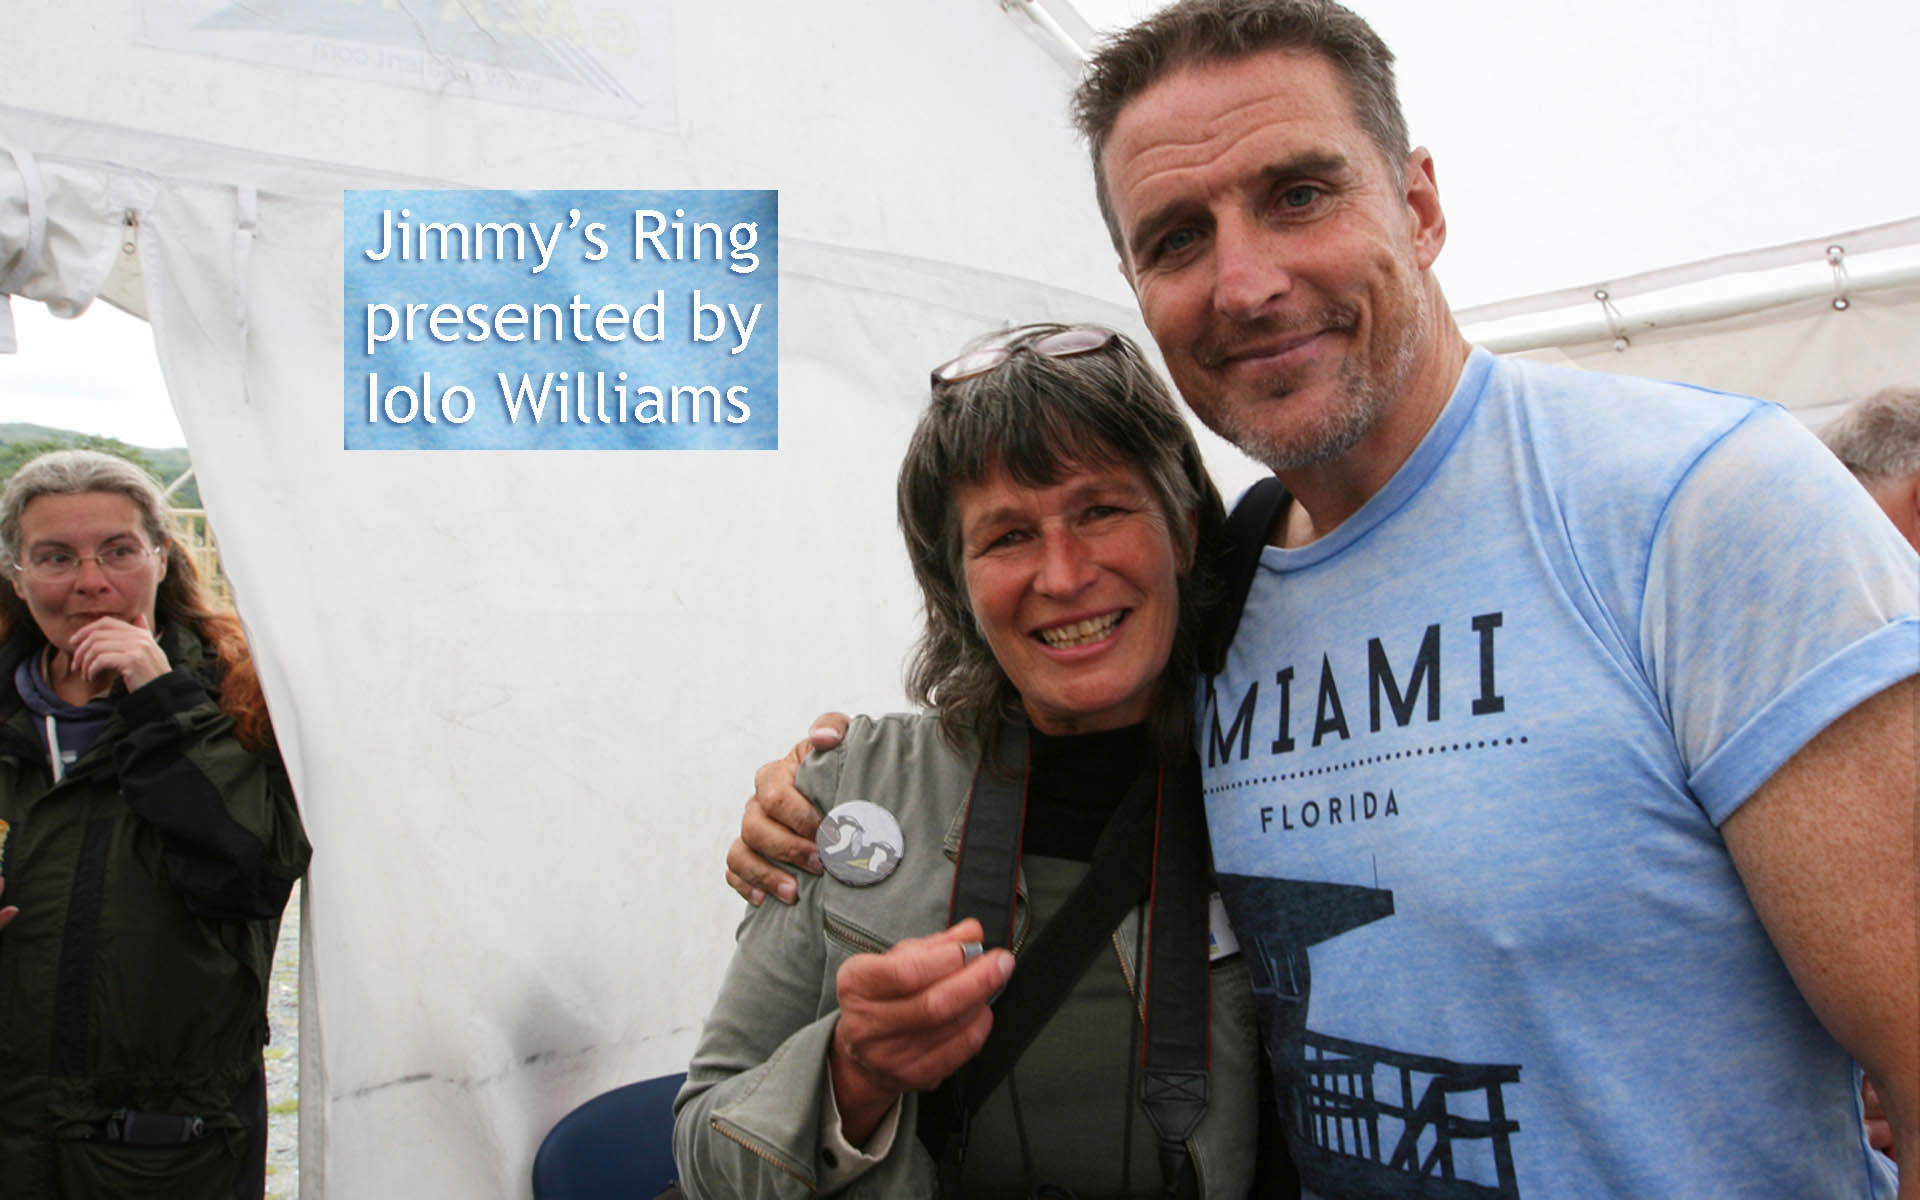 Gail being presented with Jimmy's ring by Iolo Williams on 31 July 2015